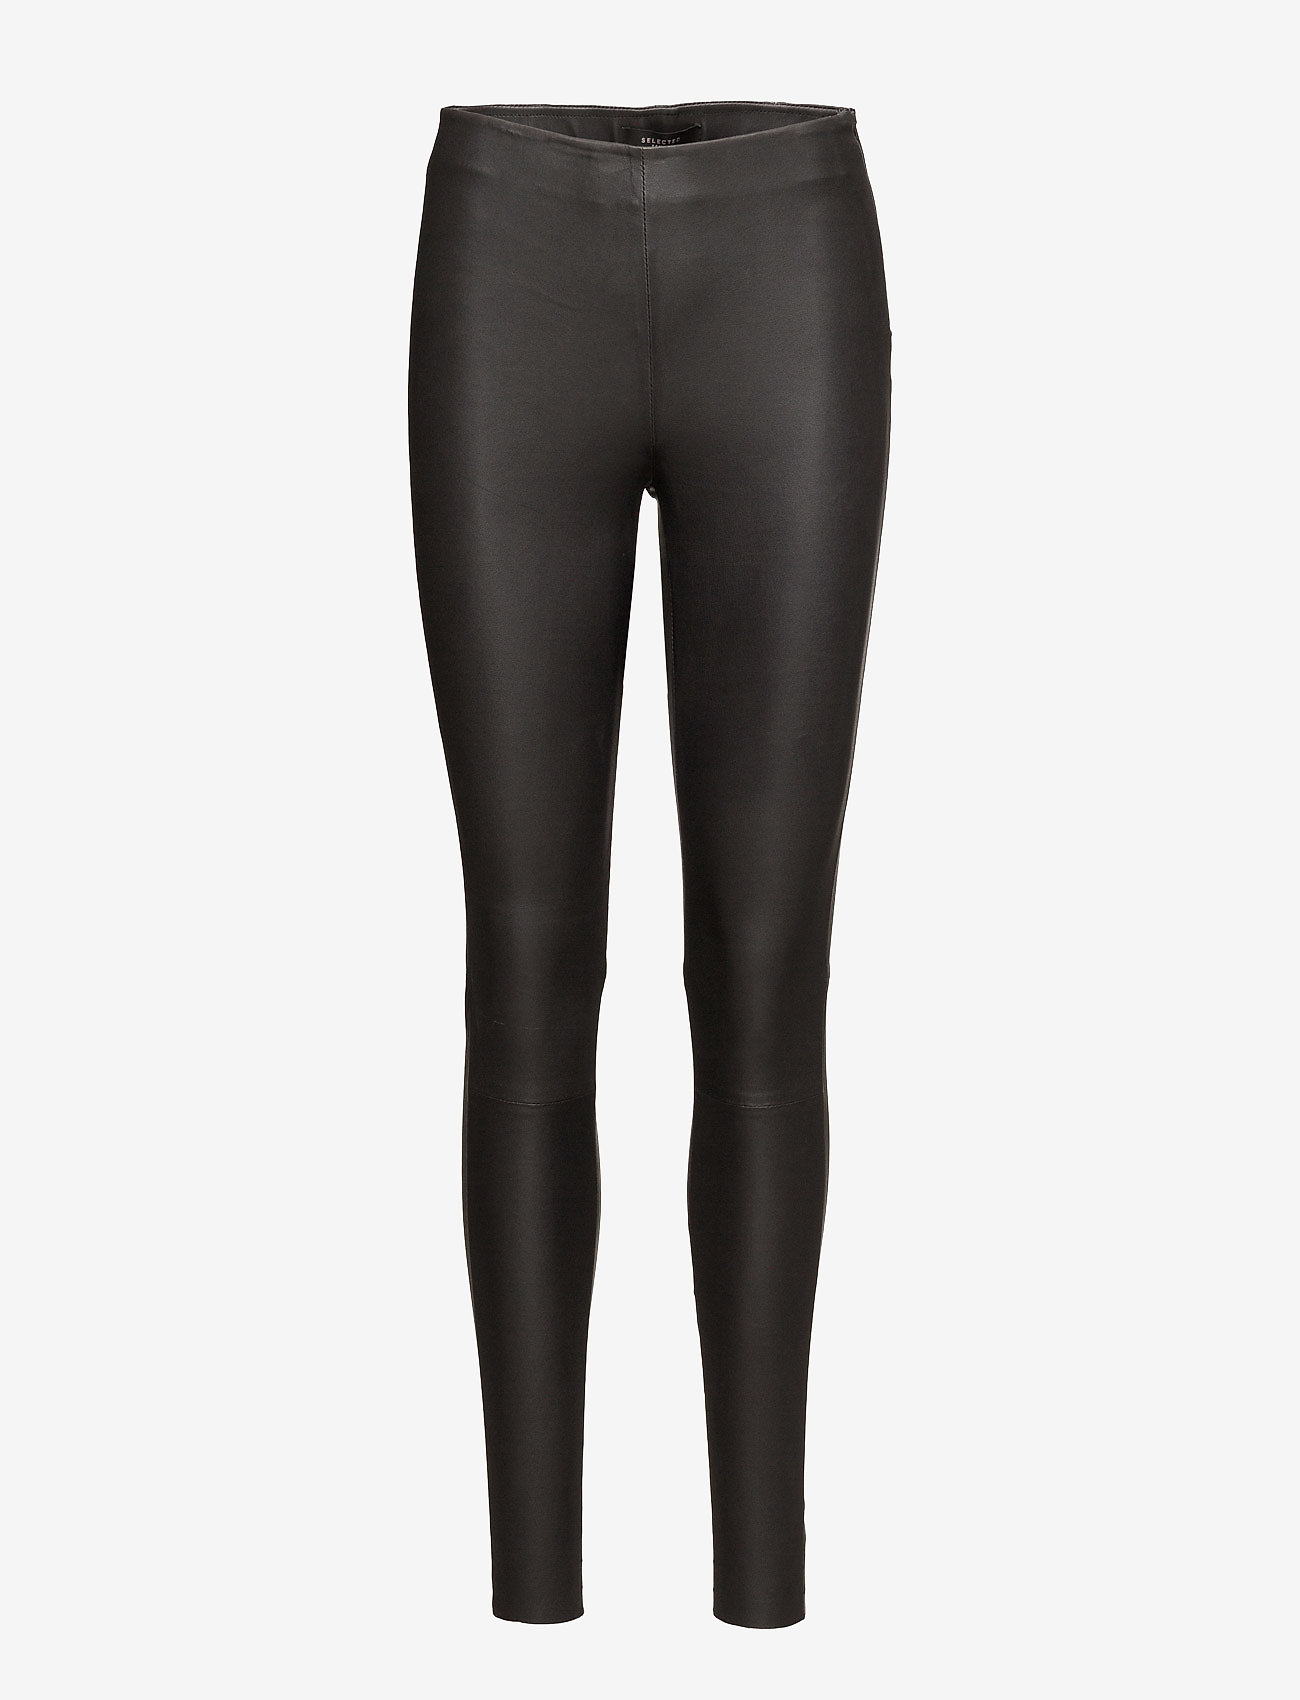 Selected Femme - SLFSYLVIA MW STRETCH LEATHER LEGGIN NOOS - læderbukser - black - 0